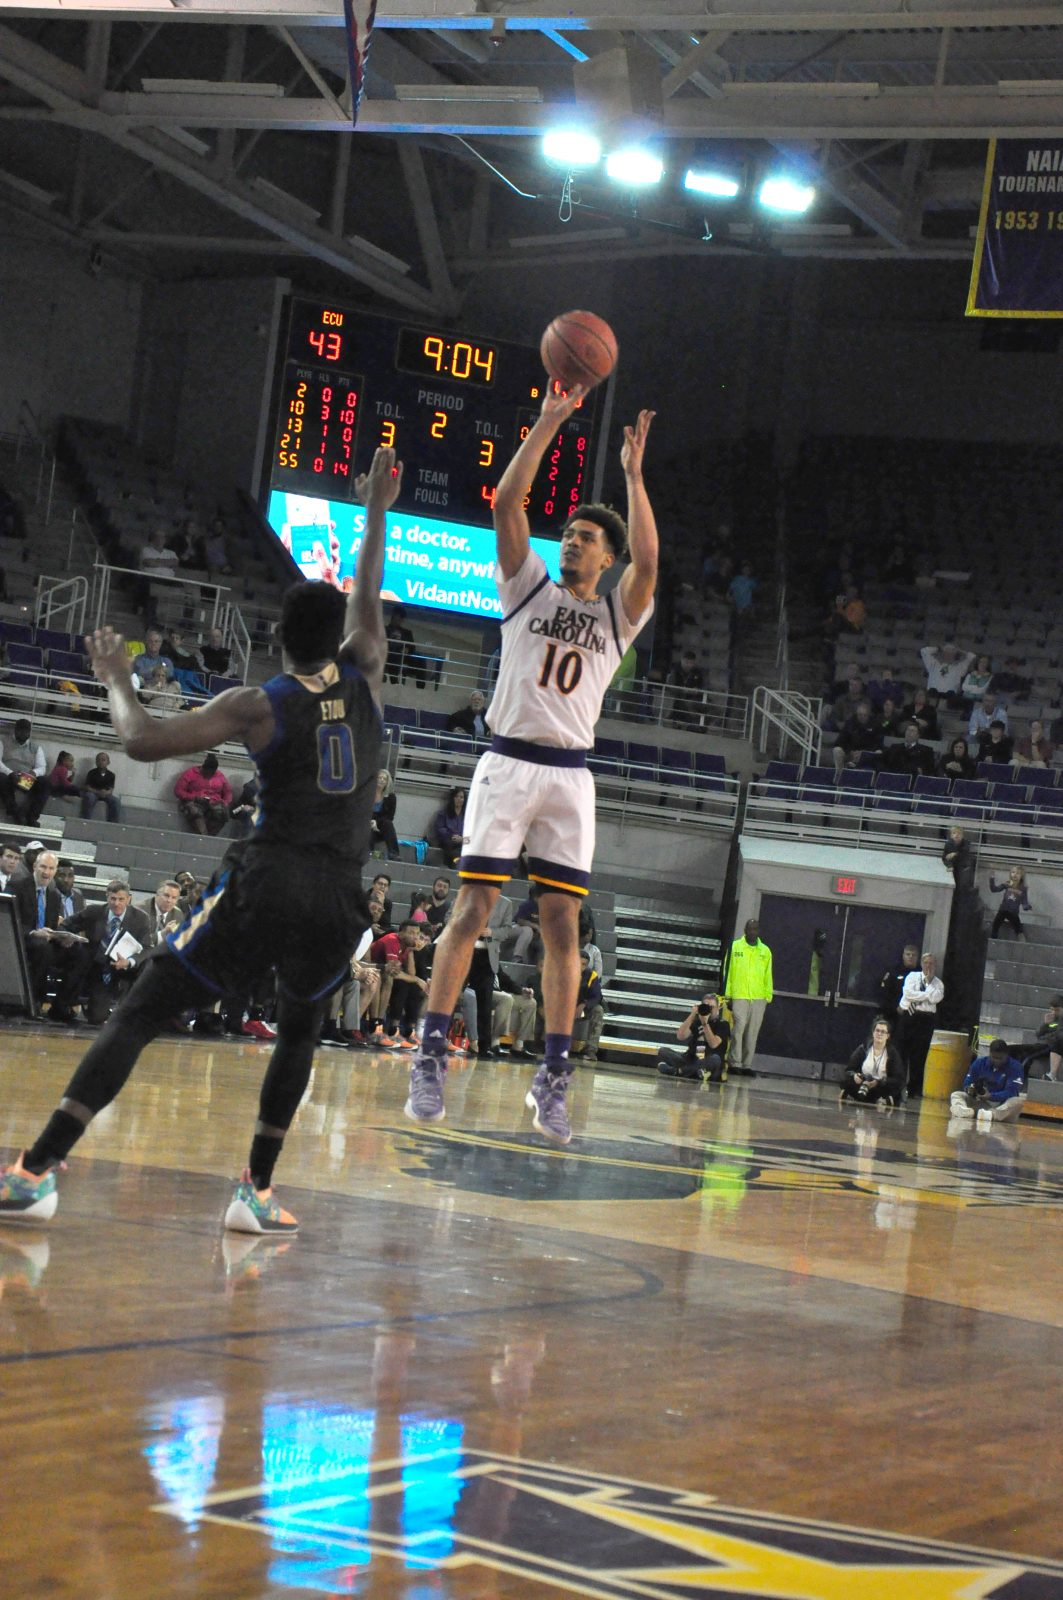 Aaron Jackson takes a jumper in his last home game for East Carolina as a player. (Photo by Al Myatt)